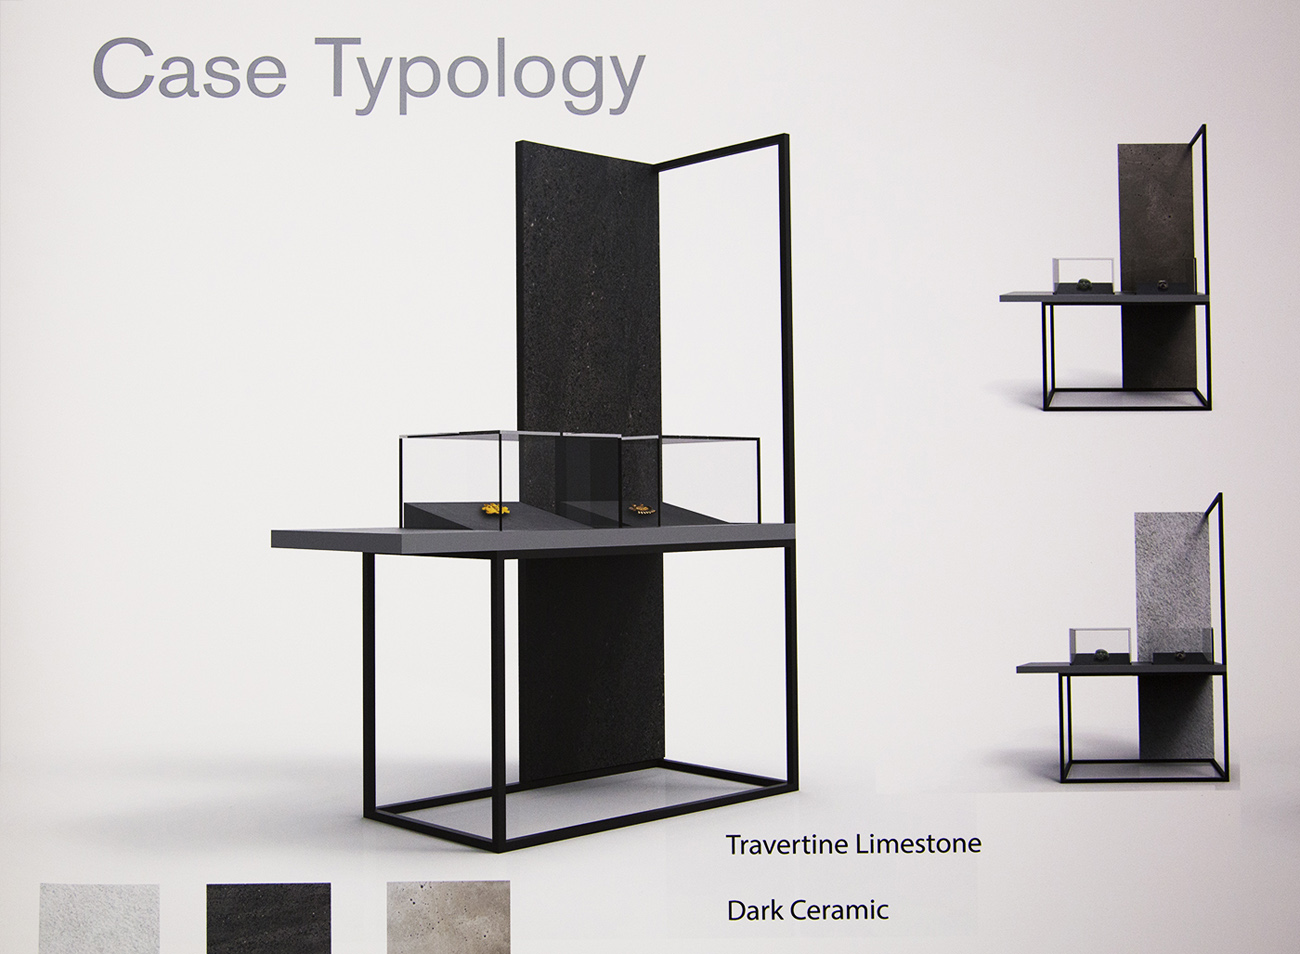 Case Typology